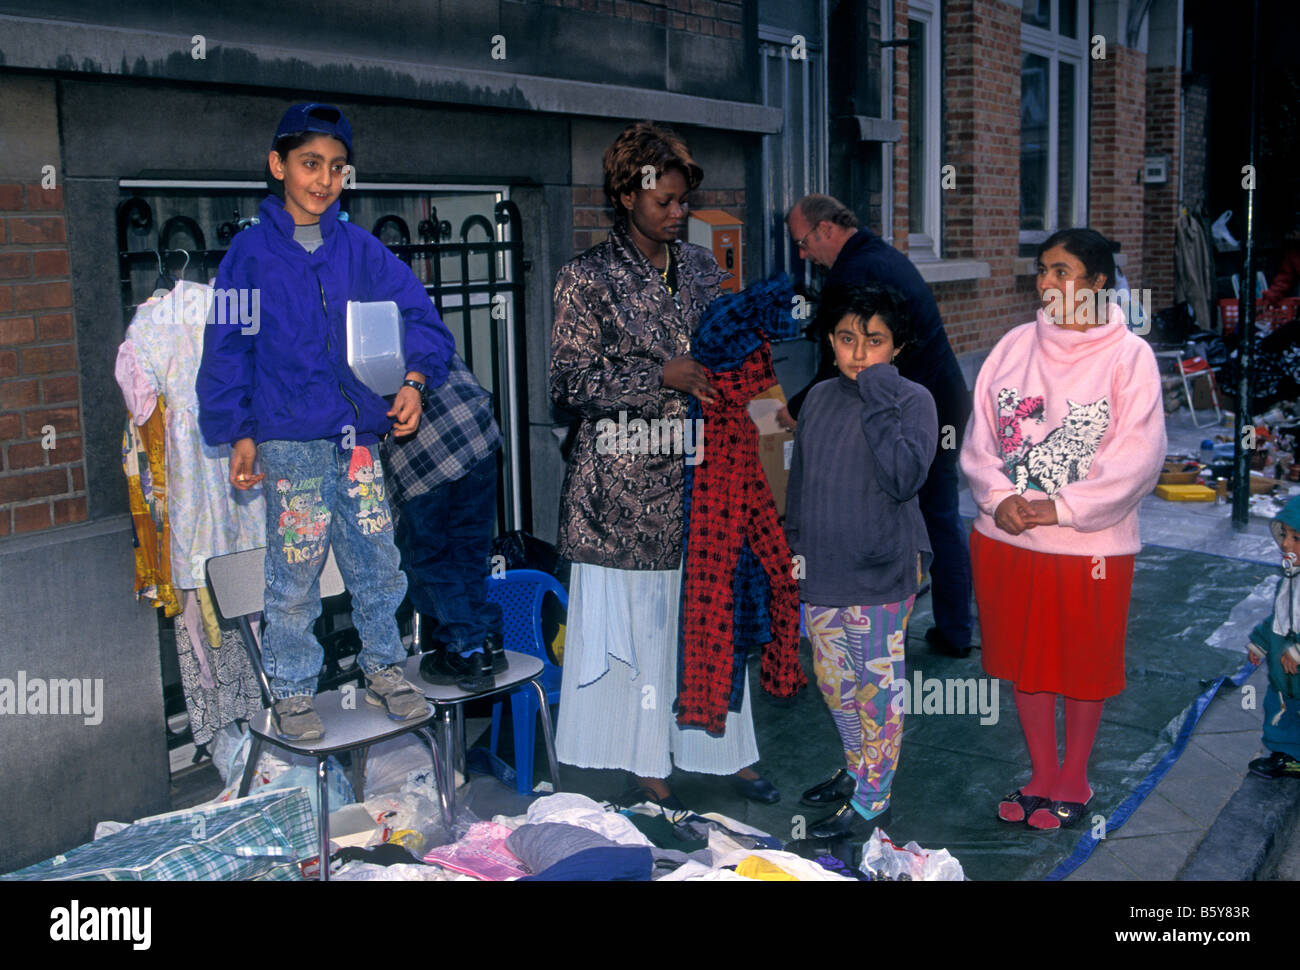 people, immigrant, immigrants, immigrant community, refugees, migrants, flea market, city of Brussels, Brussels Stock Photo